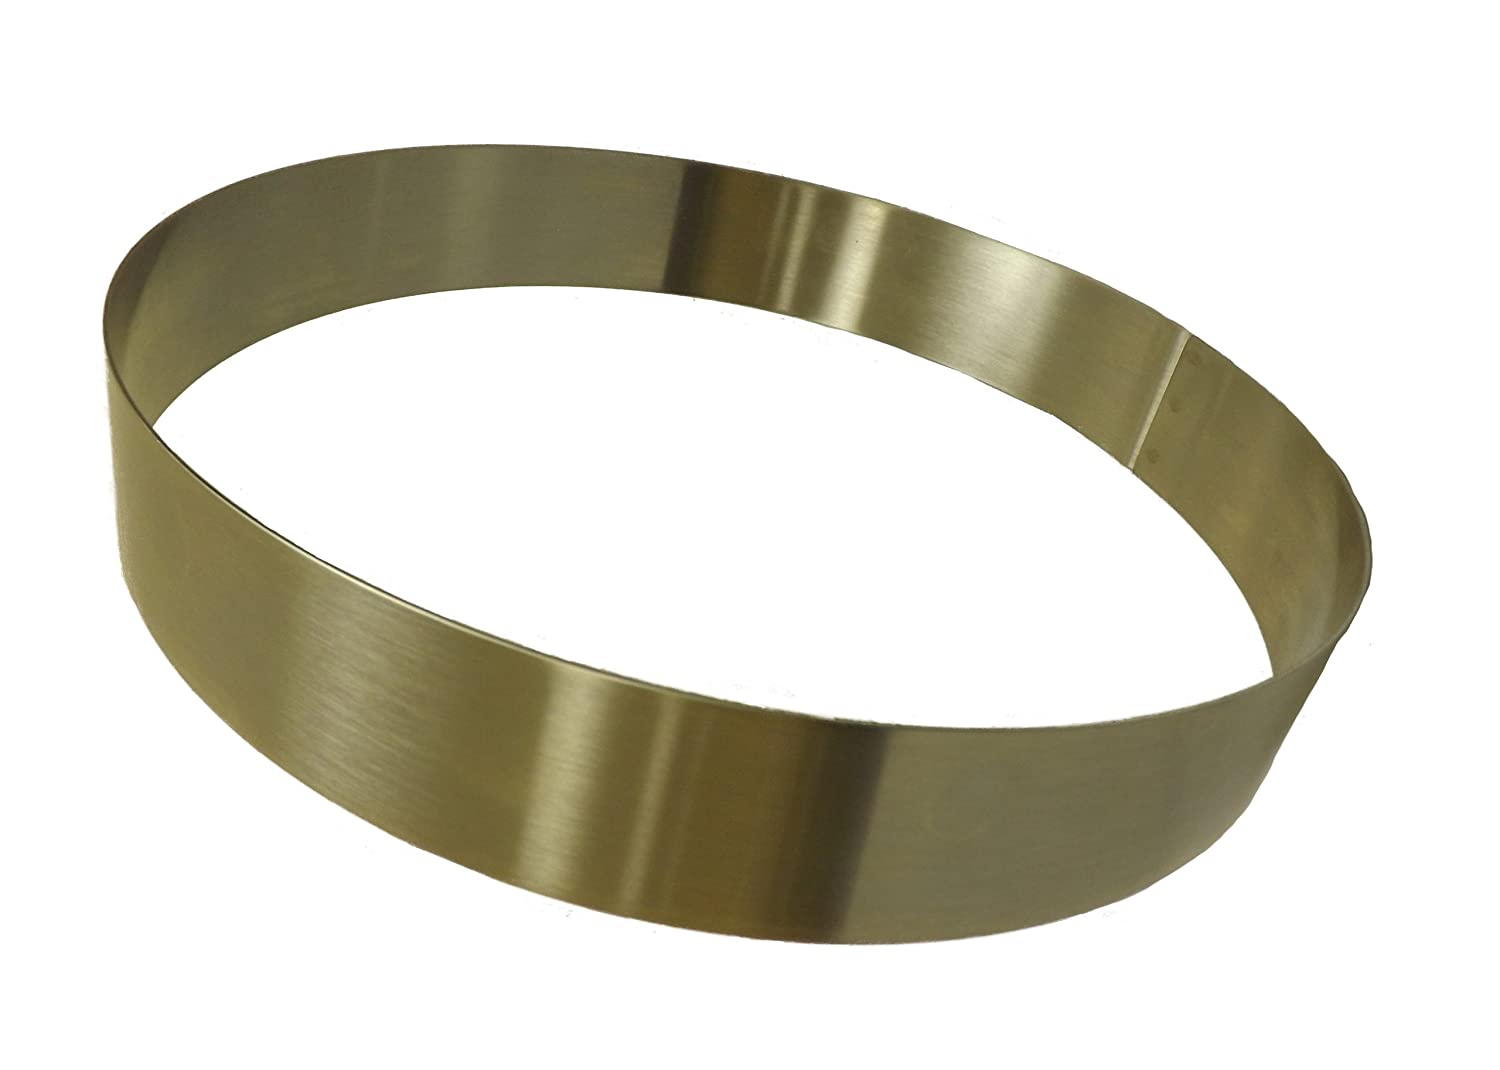 Allied Metal CRS4138 Stainless Steel Cake Ring with Smooth Deburred Edge, 4 by 1-3/8-Inch Allied Metal Spinning Corporation